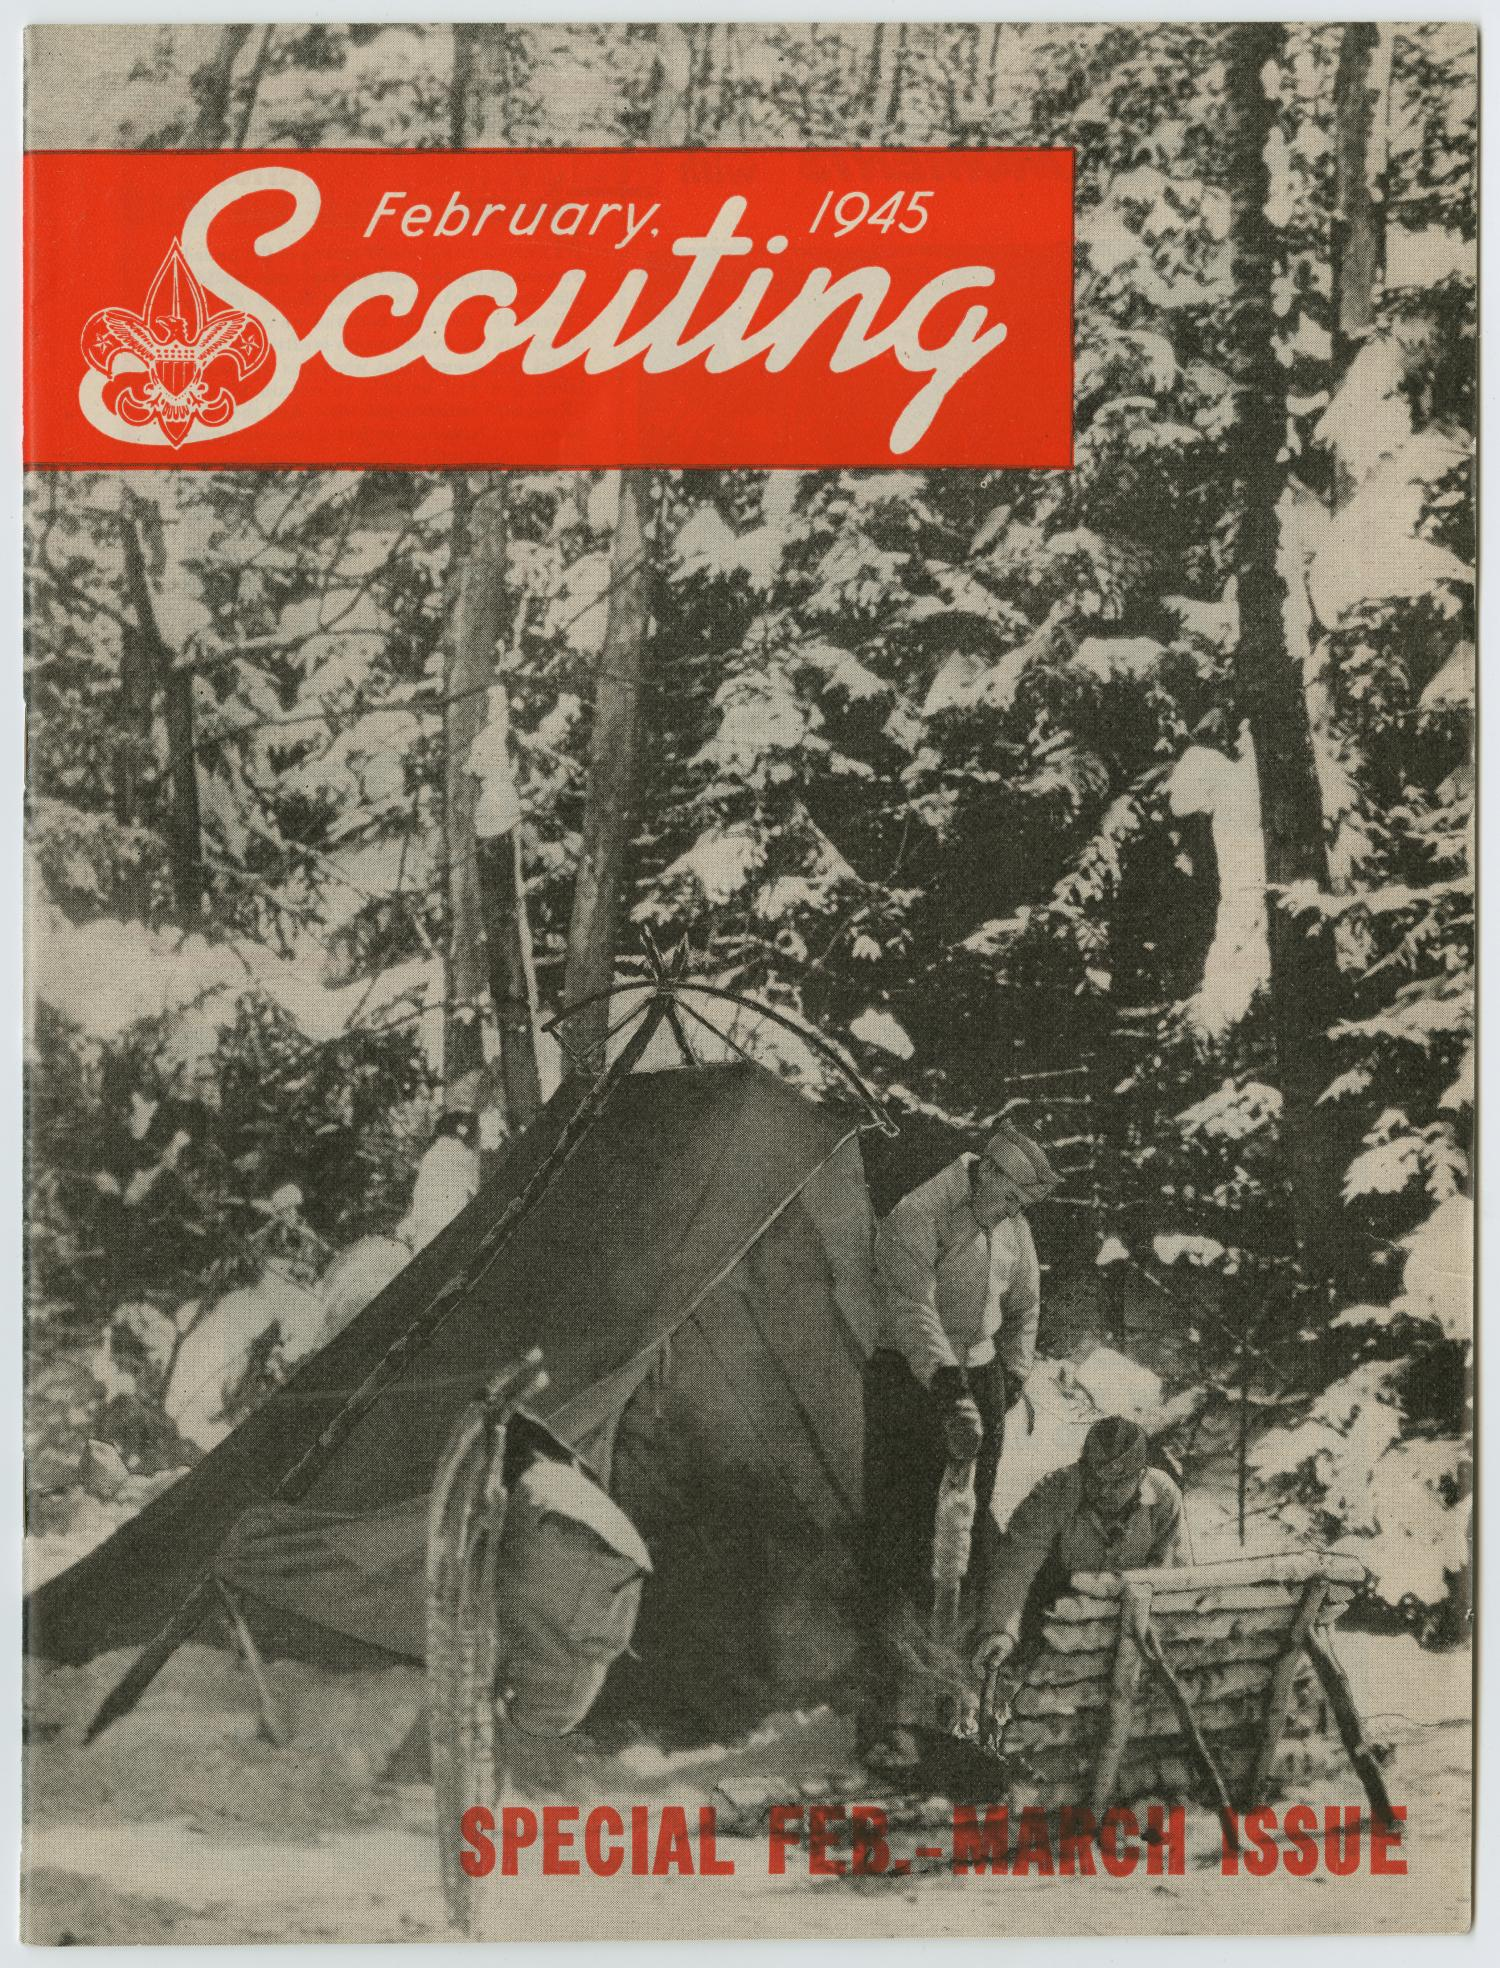 Scouting, Volume 33, Number 2, February-March 1945                                                                                                      Front Cover